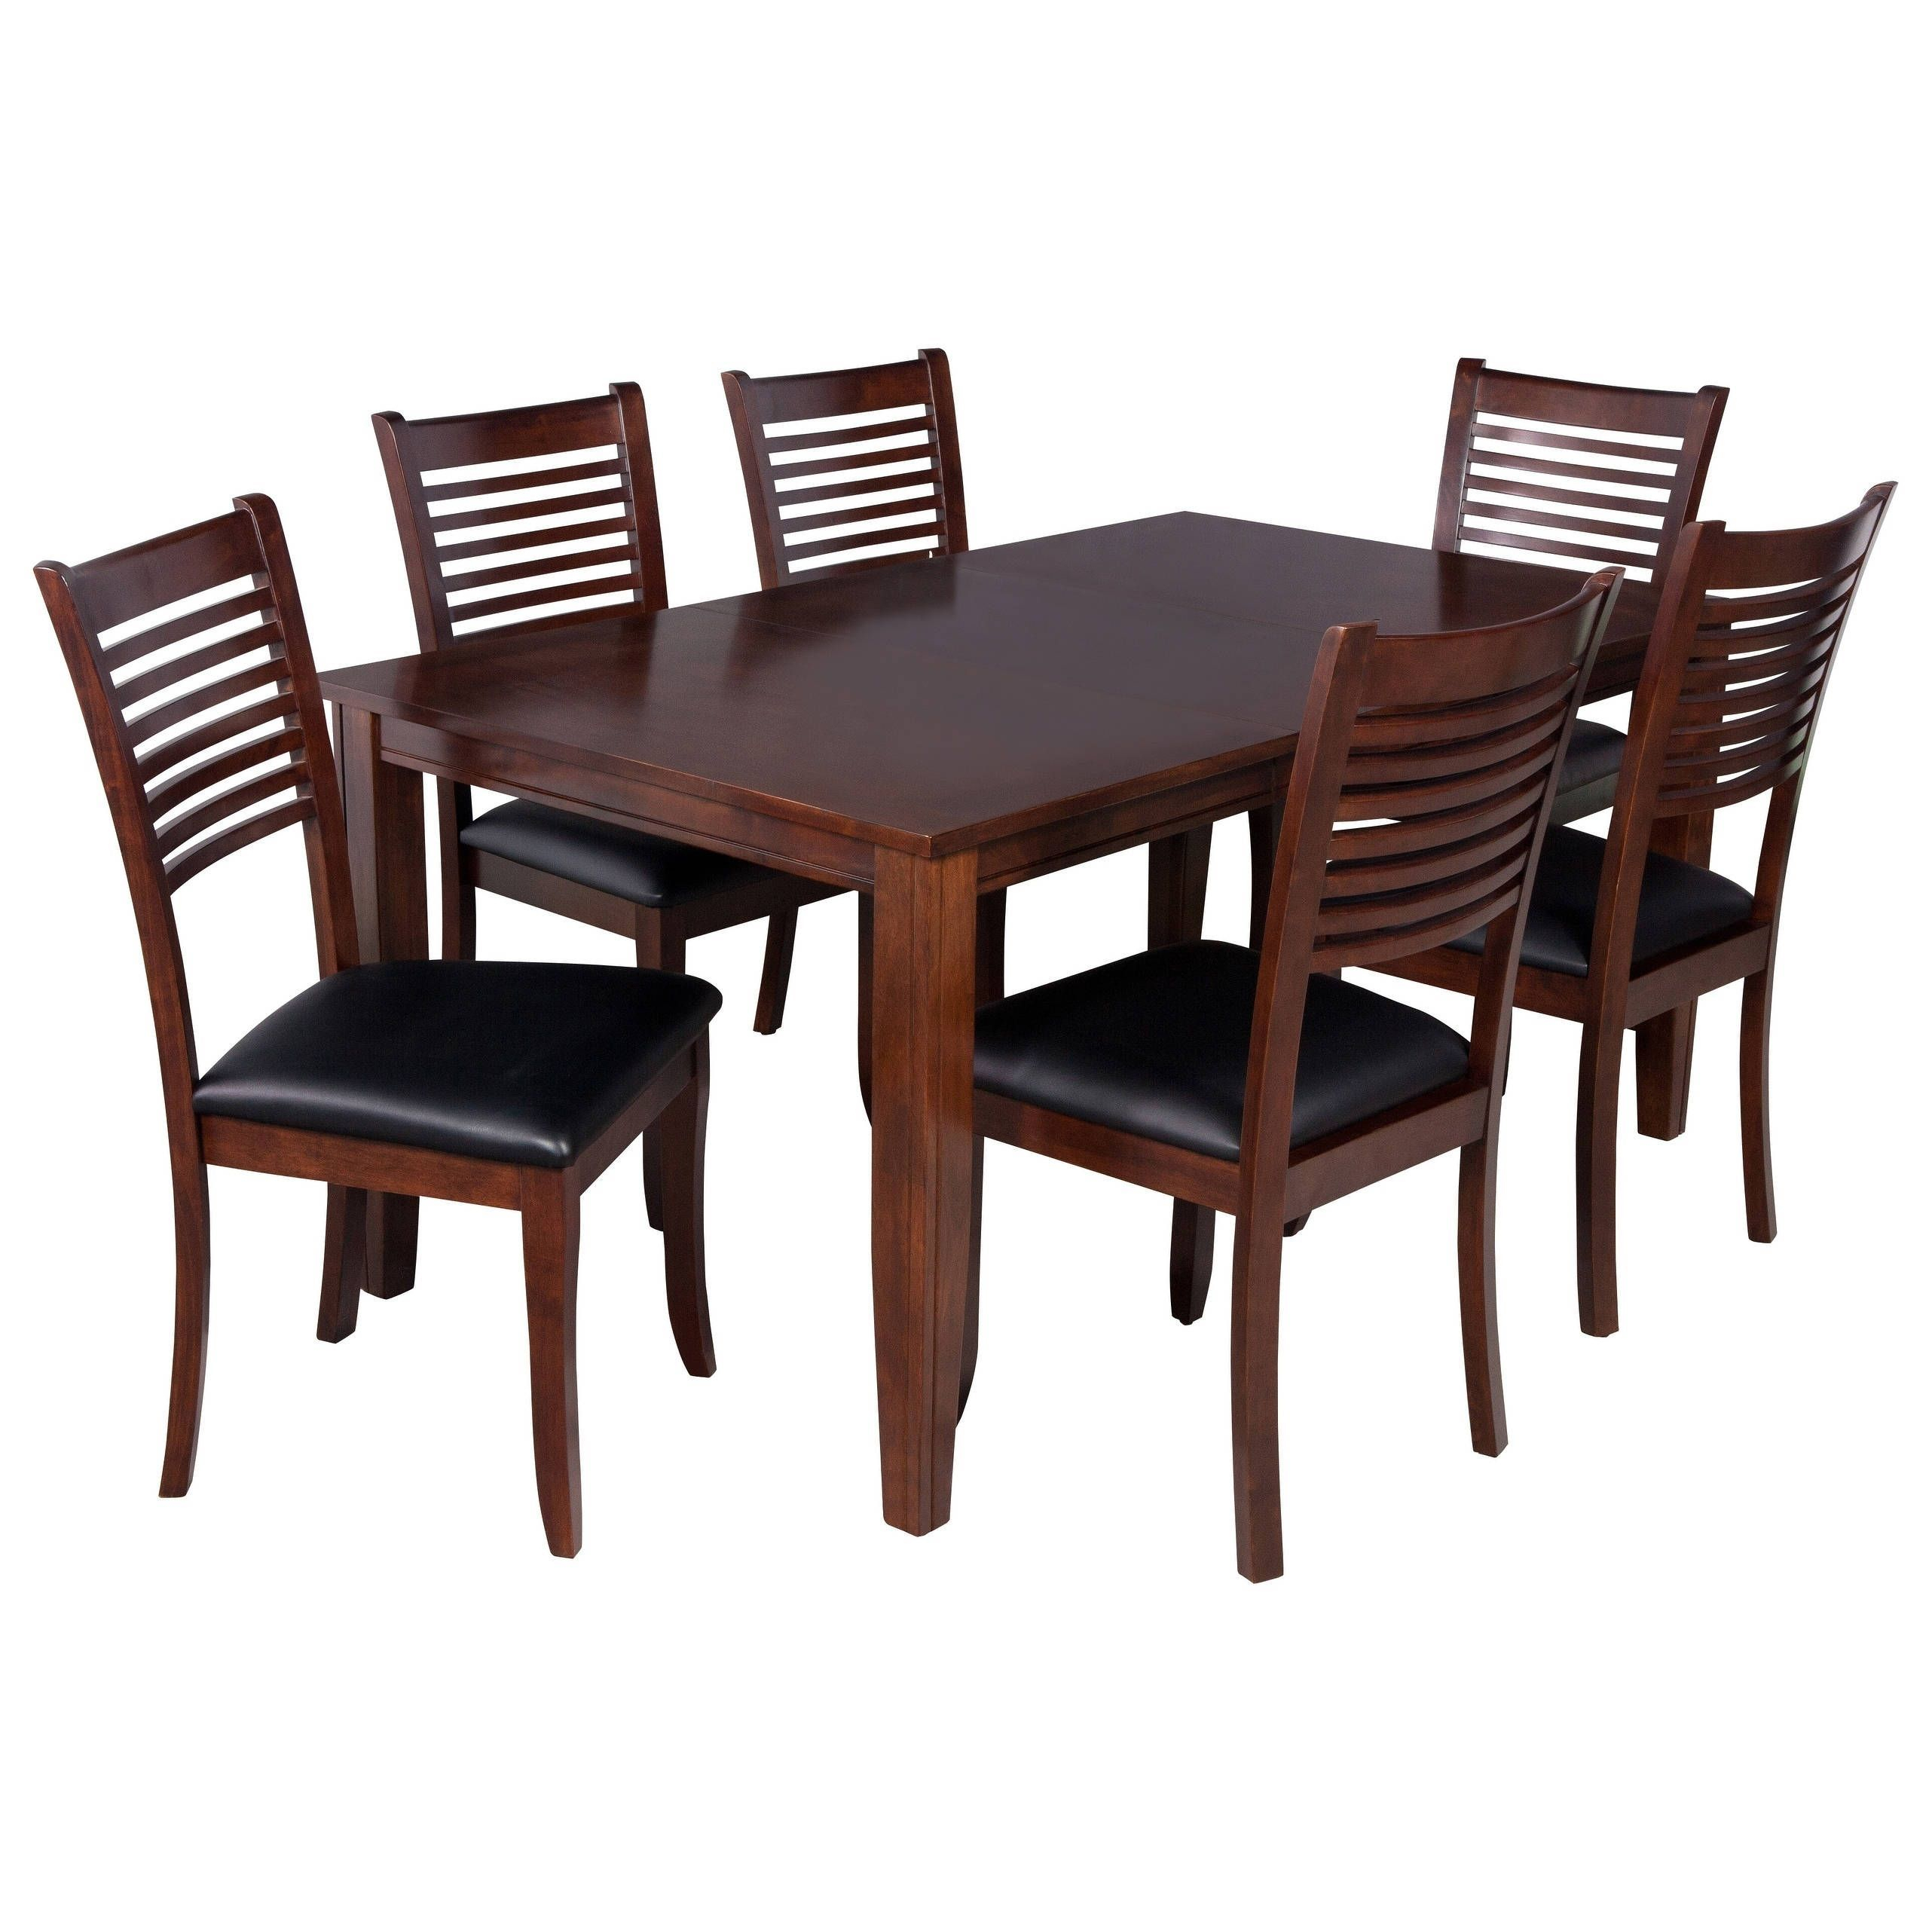 "Ttp Furnish 7 Piece Solid Wood Dining Set ""aden"", Modern Kitchen Pertaining To Newest Adan 5 Piece Solid Wood Dining Sets (Set Of 5) (View 11 of 20)"